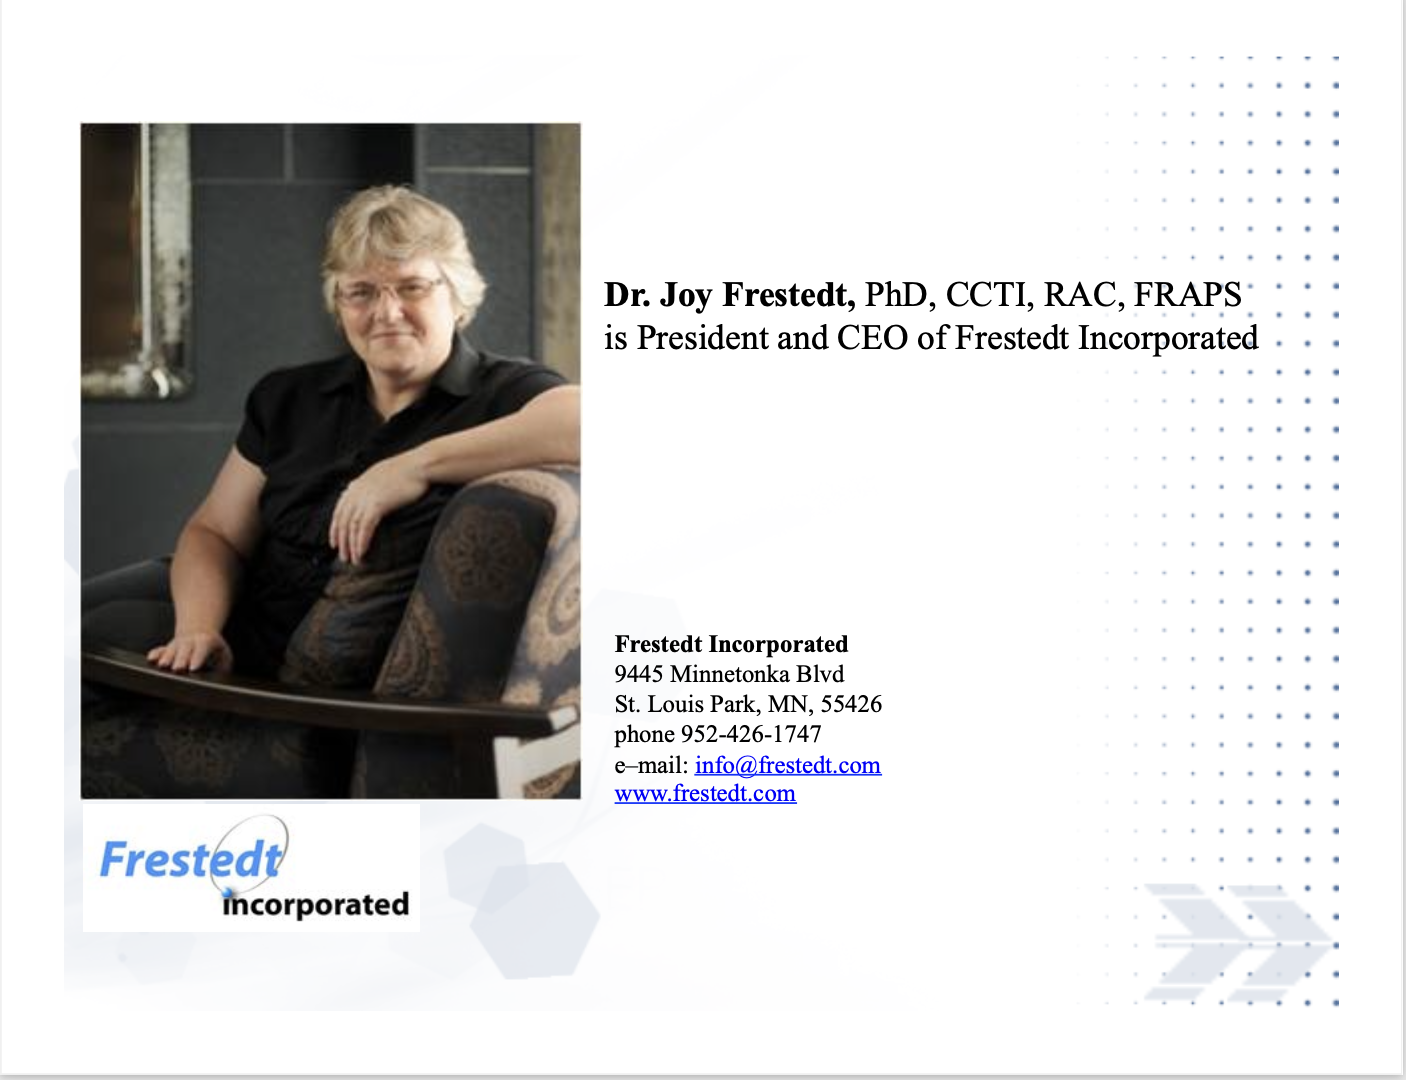 Photo of Joy Frestedt wiht Frestedt Incorporated conatct info